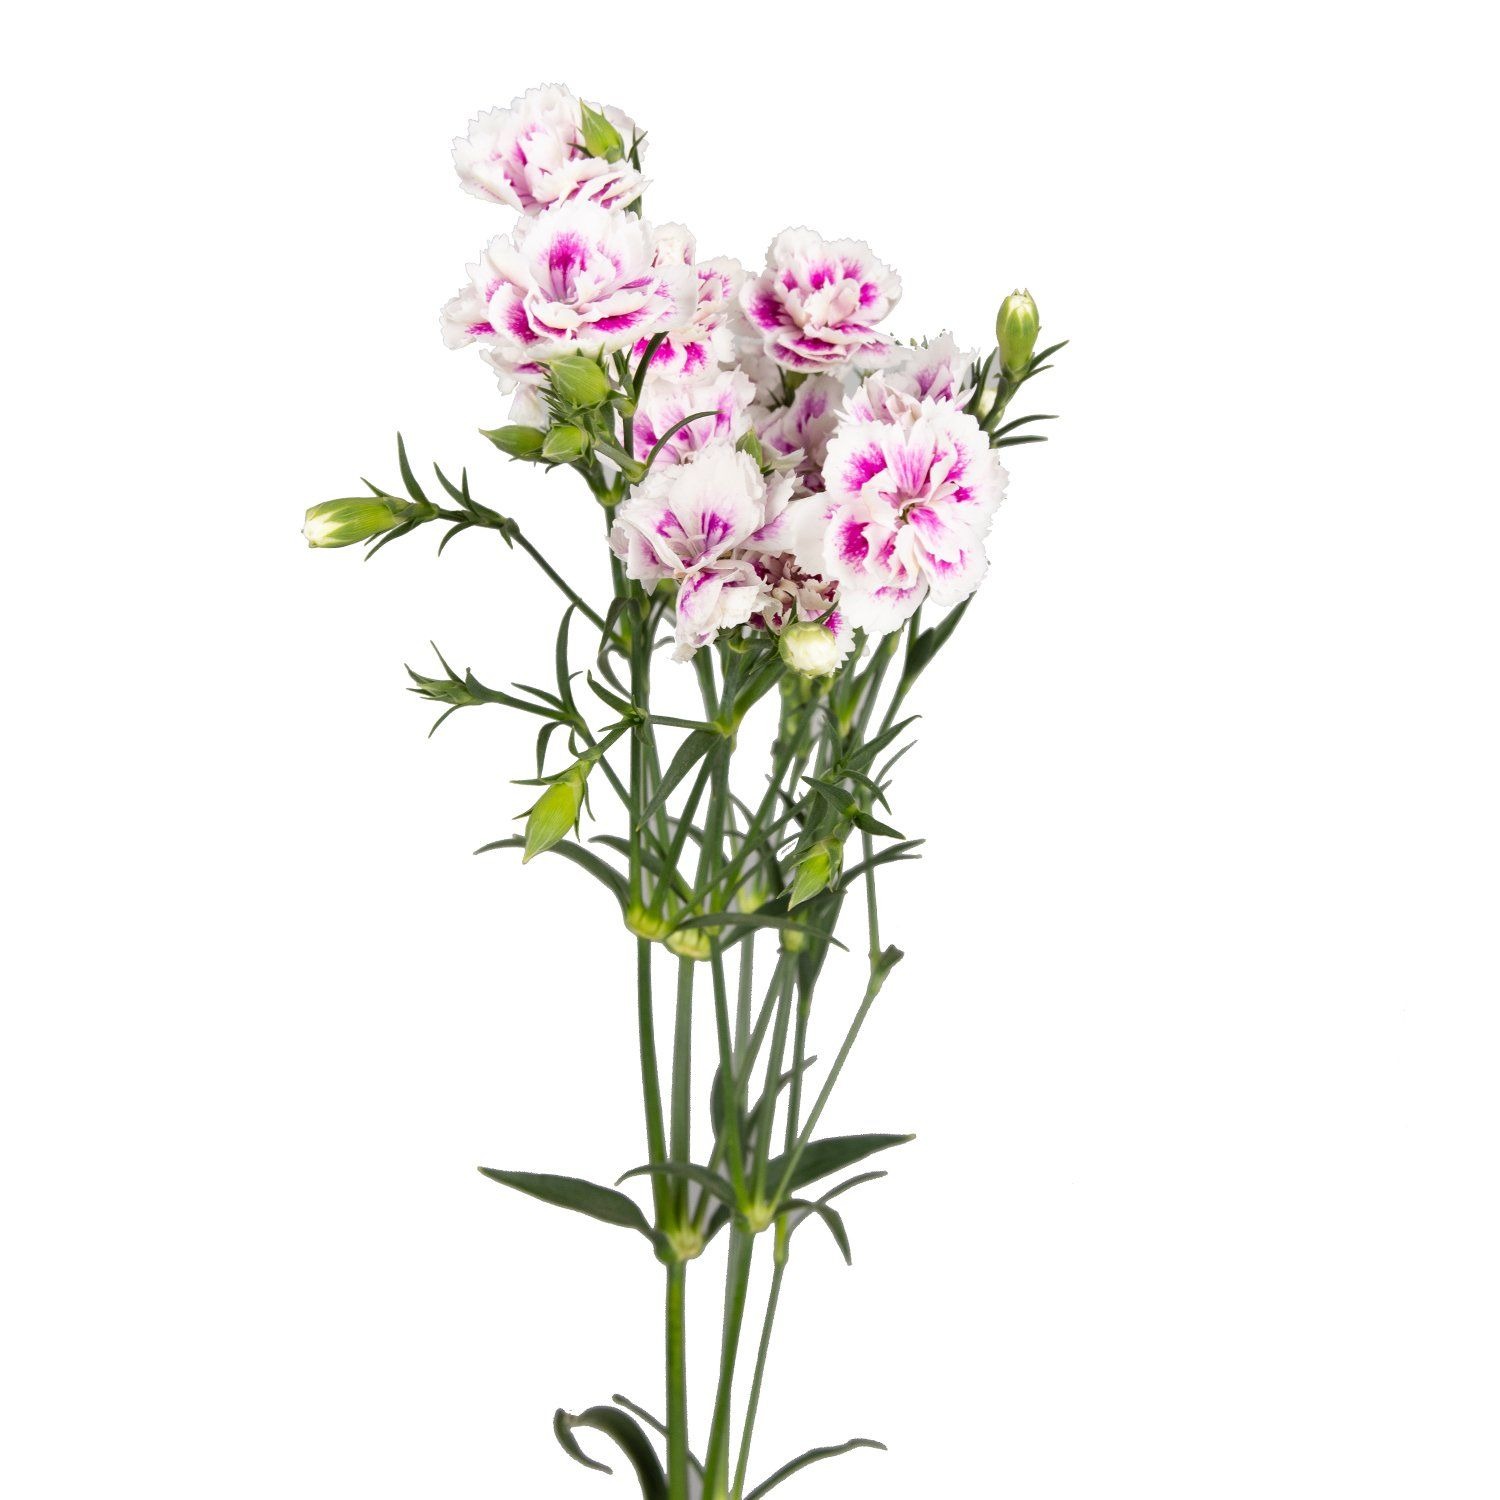 Rafines Are A Part Of The Dianthus Family And Resemble Micro Carnations They Have An Extremely Long Vase Life With Proper Care Long Vases Carnations Flowers